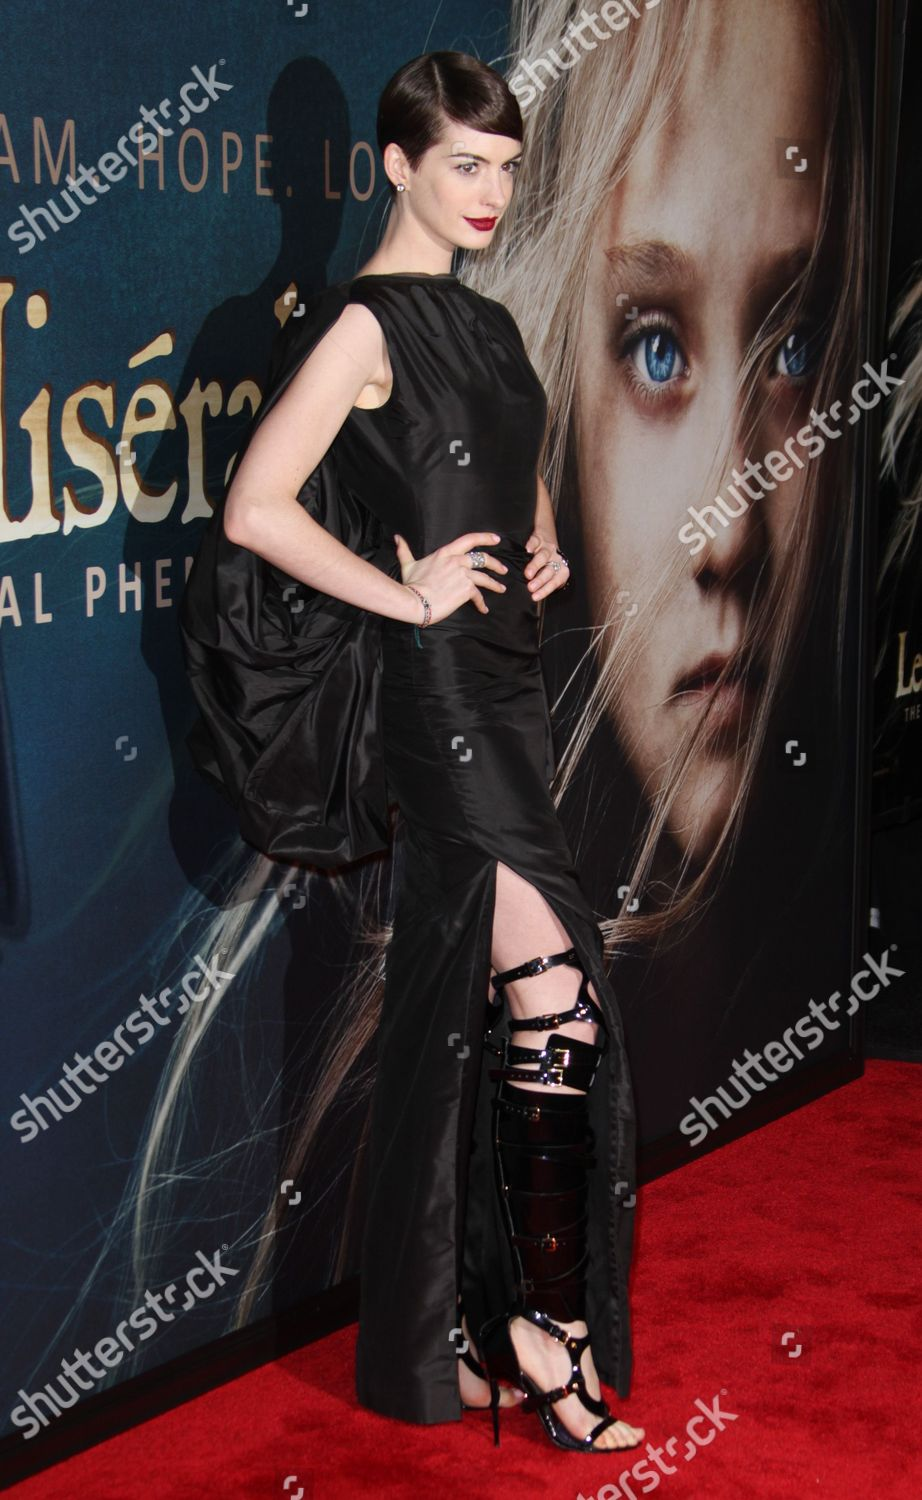 bb44479dc9ae Anne hathaway editorial stock photo stock image shutterstock jpg 922x1500  Anne hathaway gladiator boots